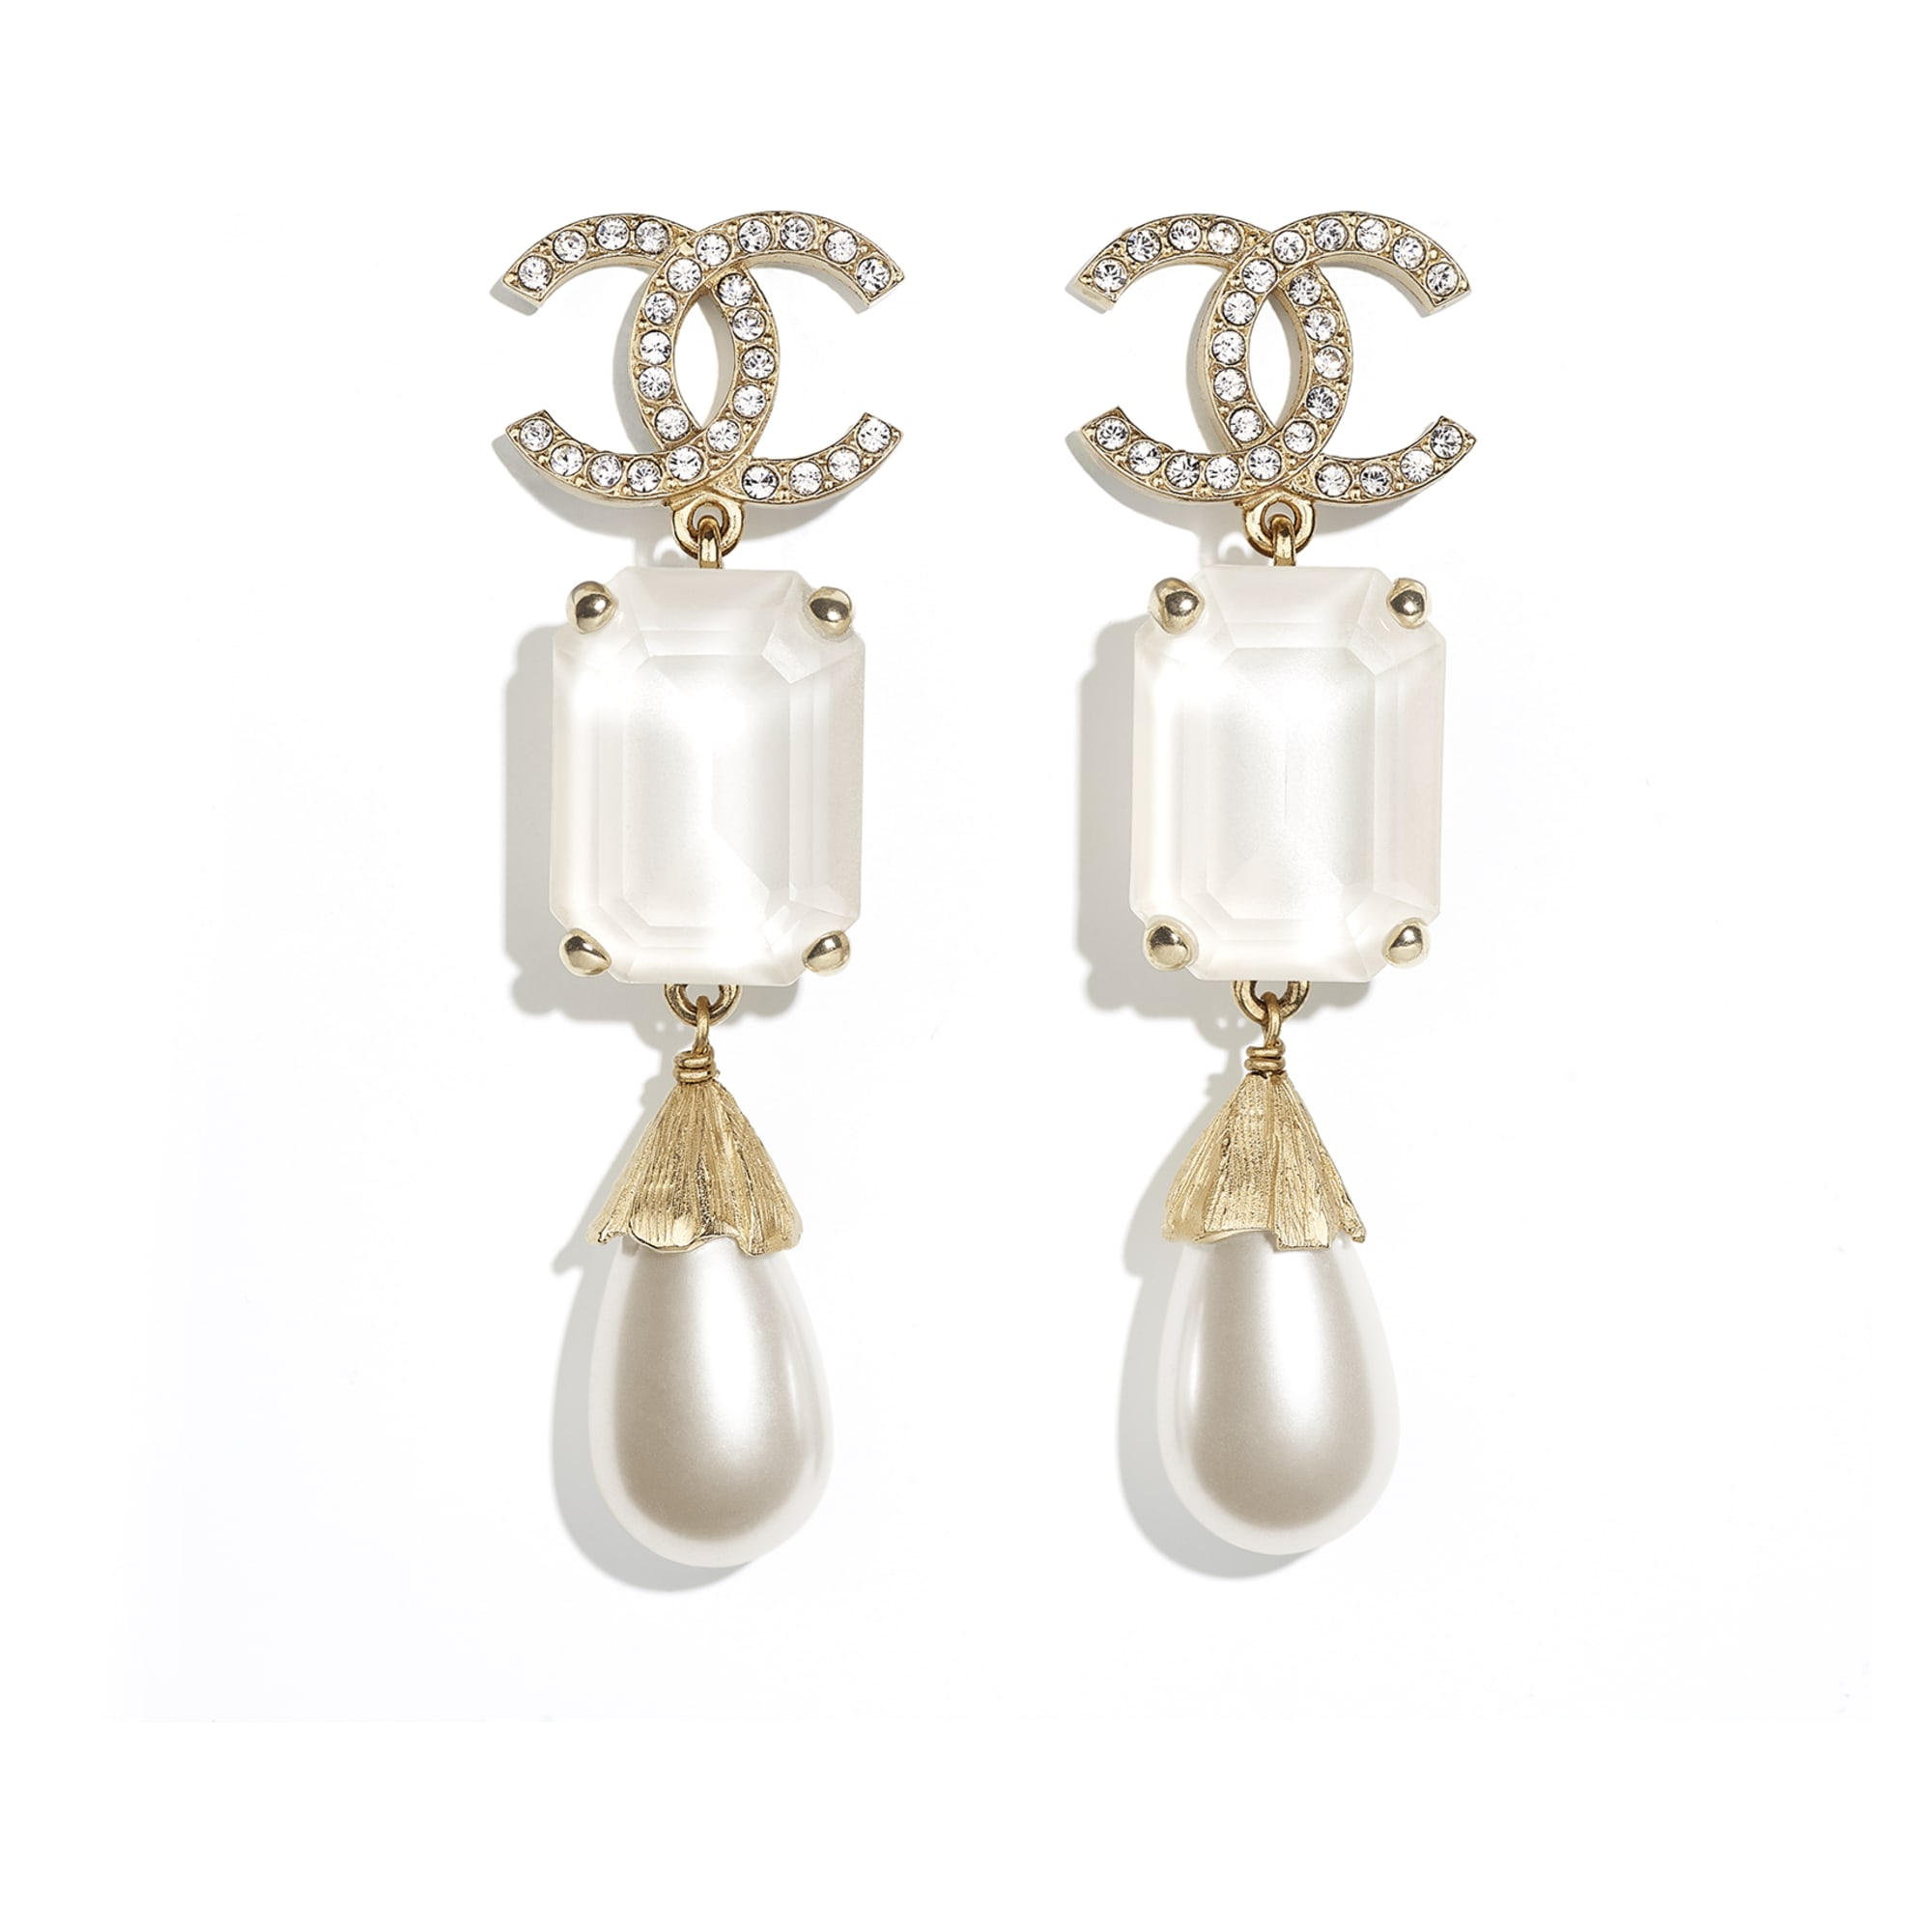 Earrings - Gold, Pearly White, White & Crystal - Metal, Imitation Pearls & Diamanté - CHANEL - Default view - see standard sized version